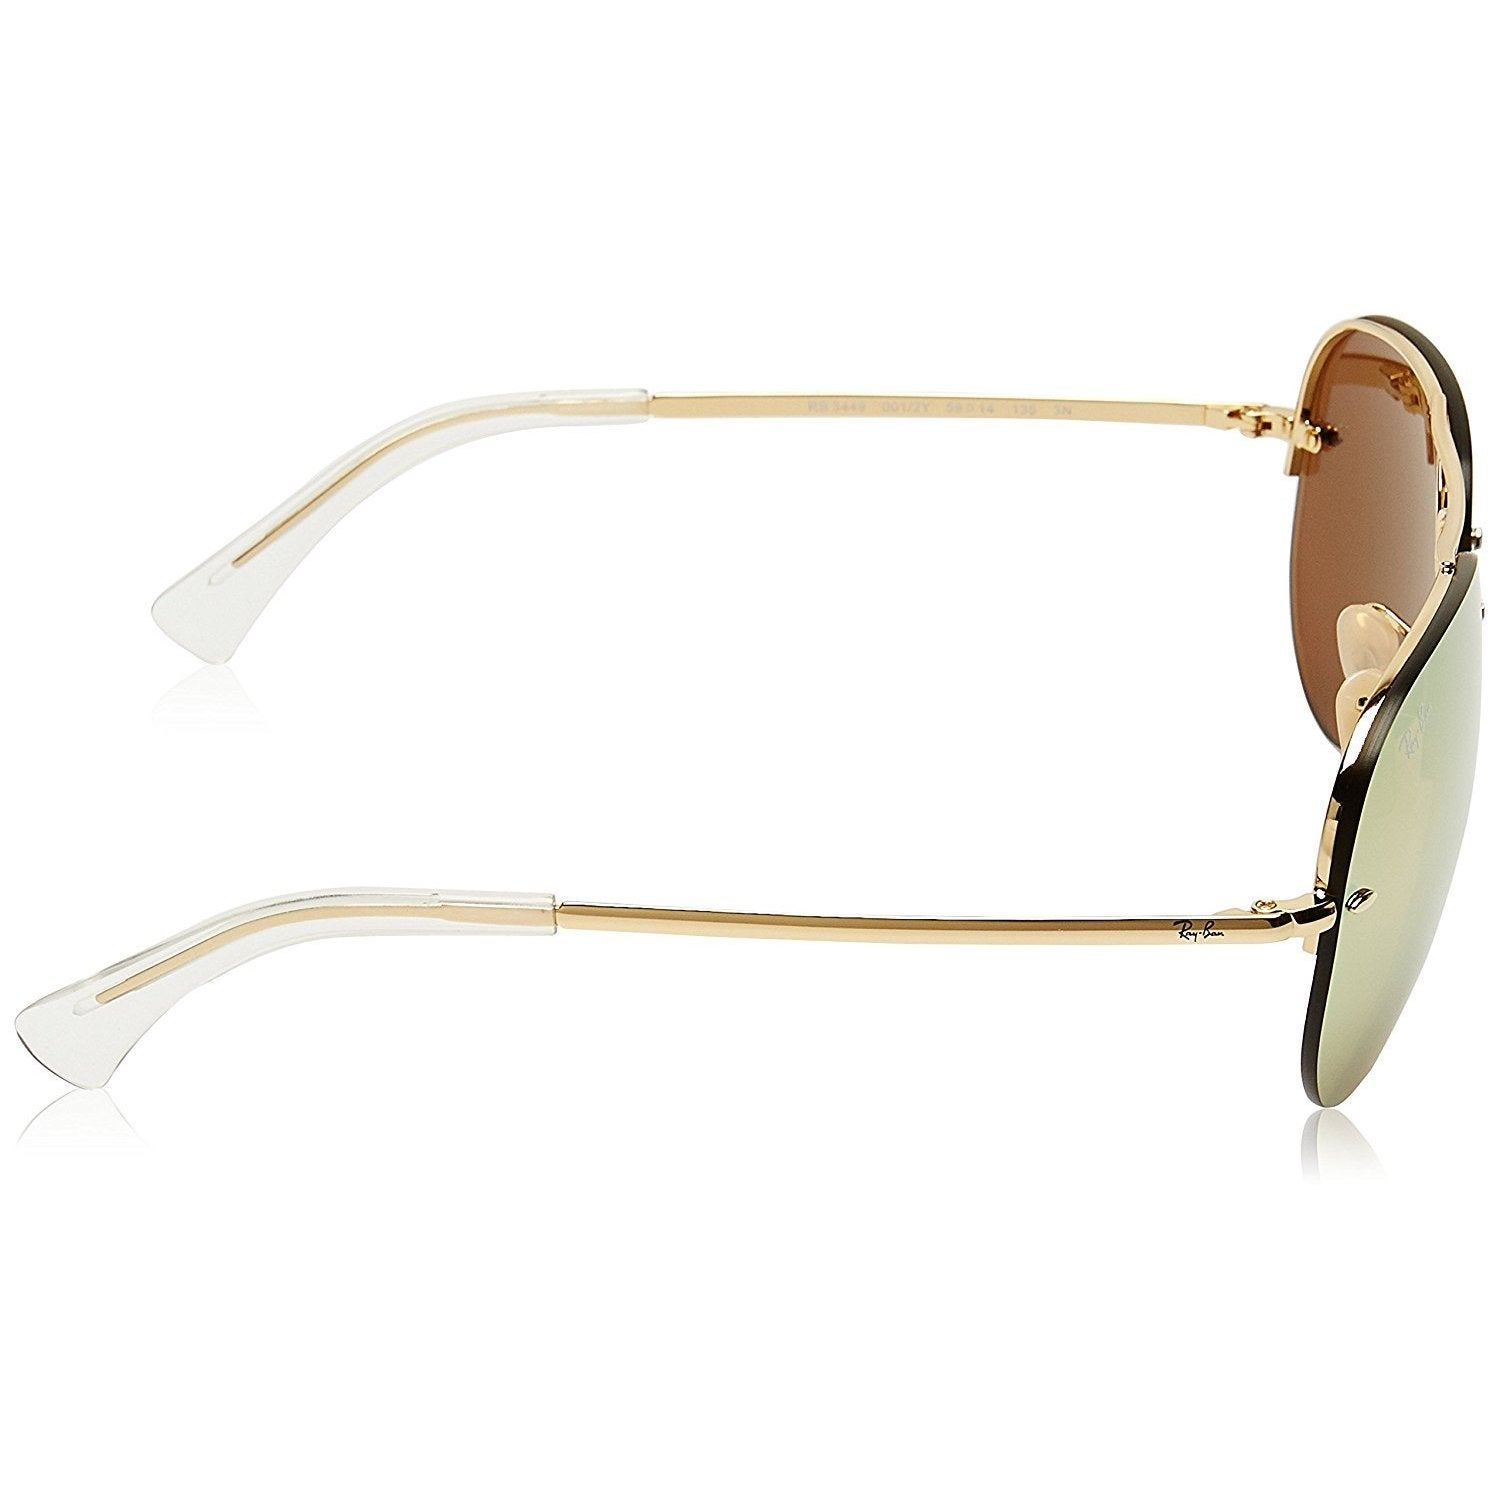 4f5c74a28add3e Shop Ray-Ban RB3449 001 2Y Unisex Gold Frame Copper Mirror Lens Sunglasses  - Free Shipping Today - Overstock.com - 15002988